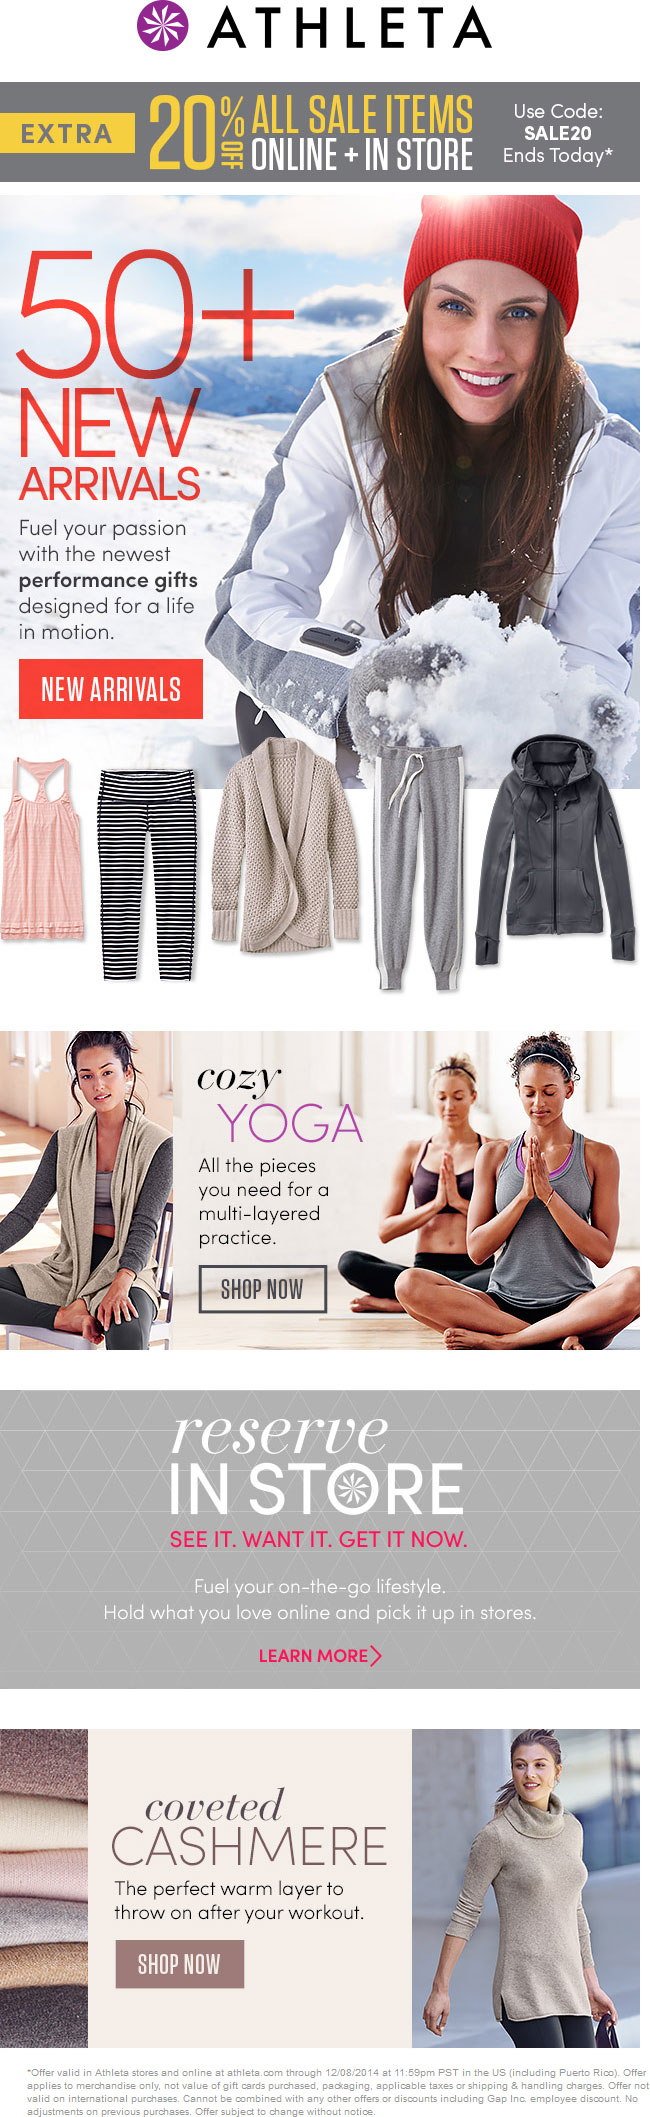 Athleta Coupon April 2017 Extra 20% off sale items today at Athleta, or online via promo code SALE20